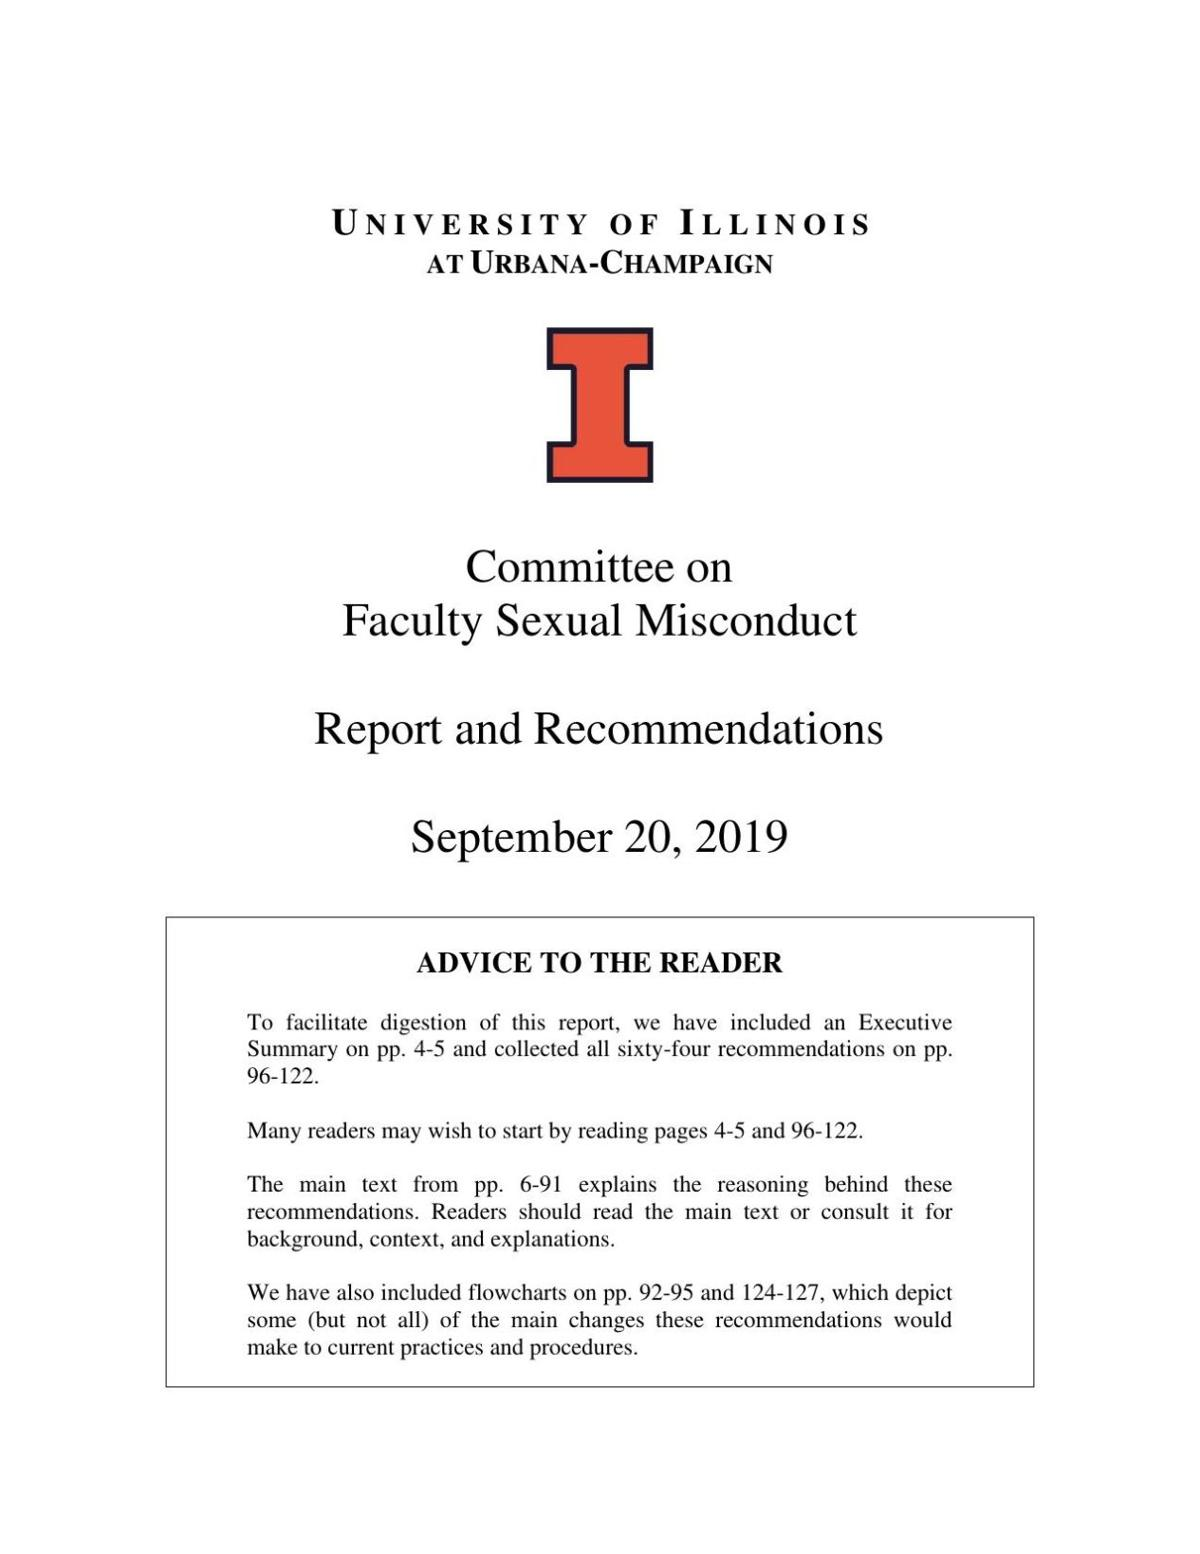 PDF: UI committee on faculty sexual misconduct final report